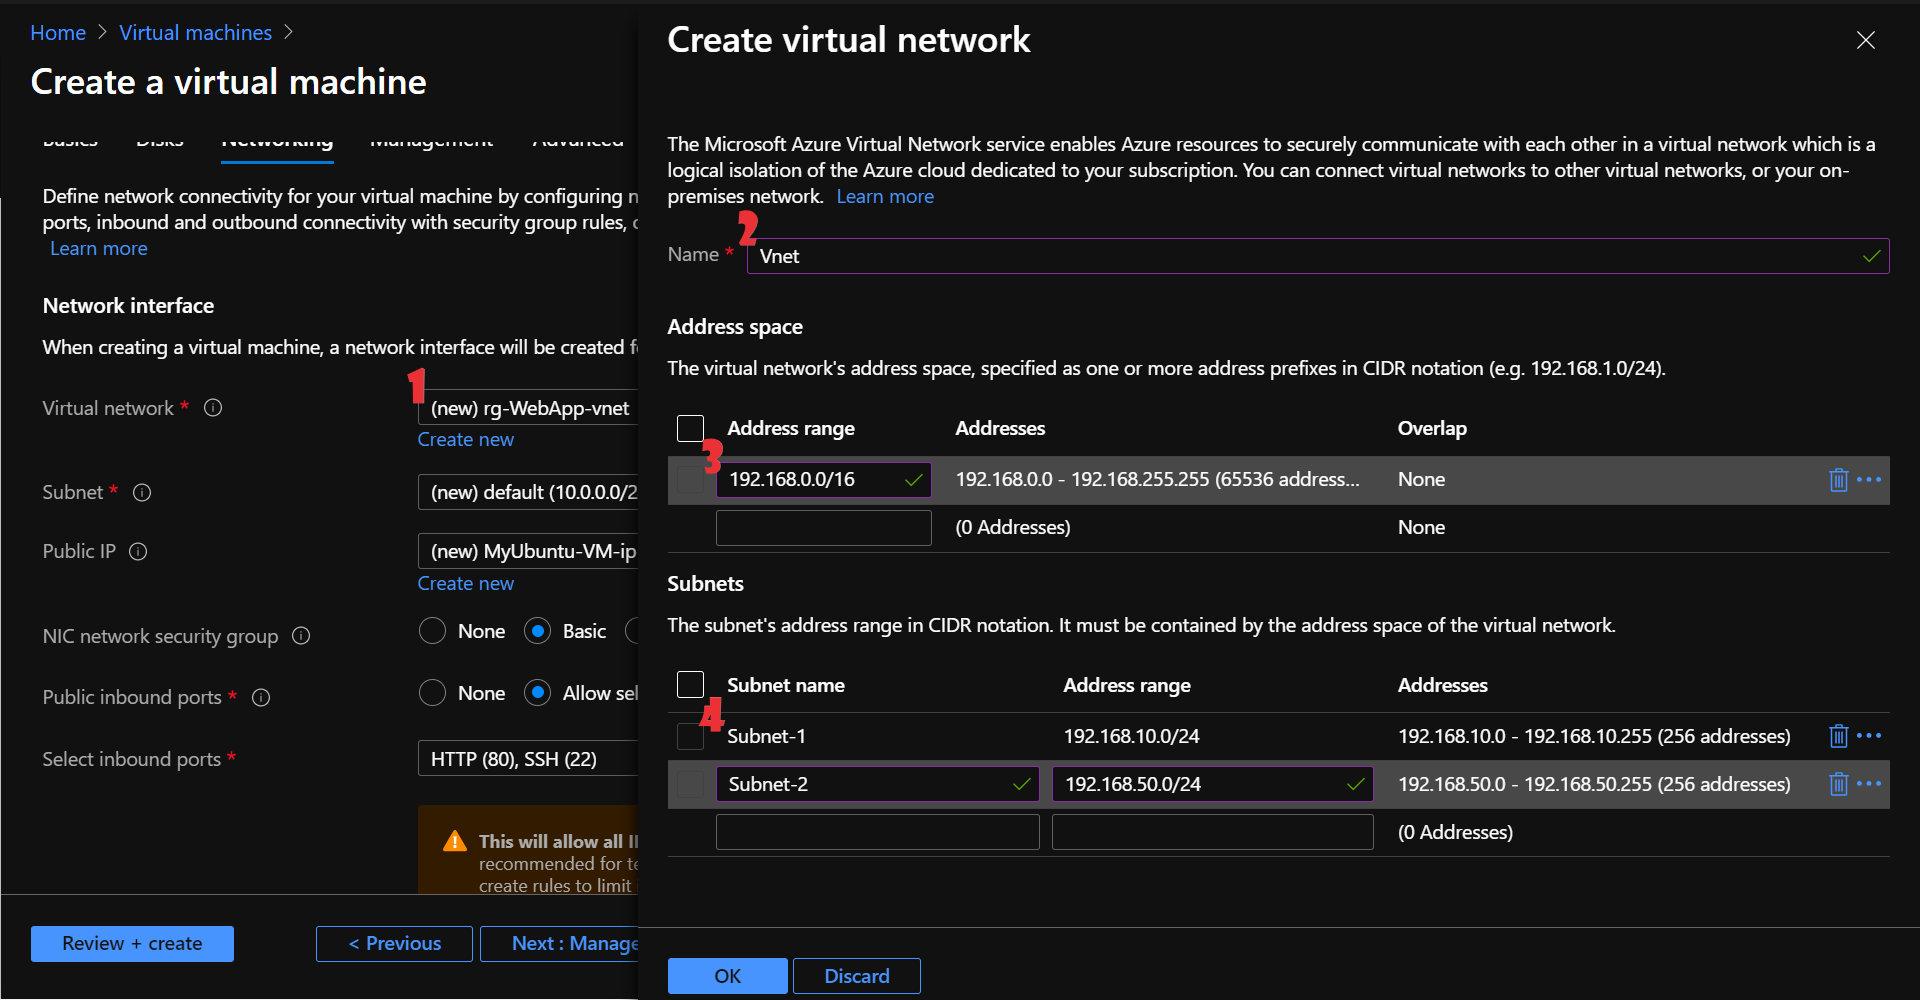 Configure the networking details required for the virtual machine. (1)